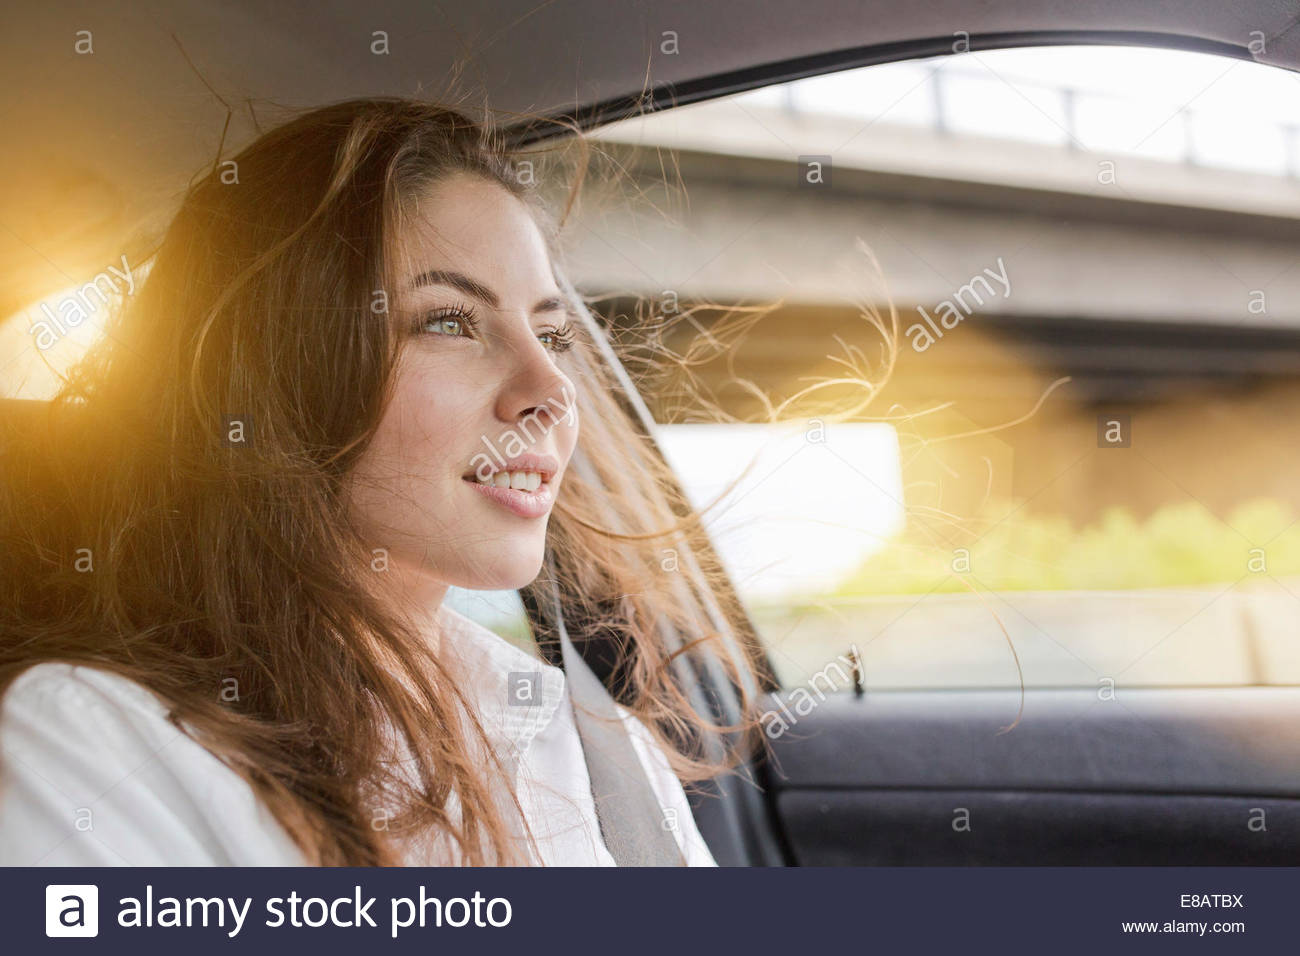 Young woman in car, hair blowing in wind - Stock Image